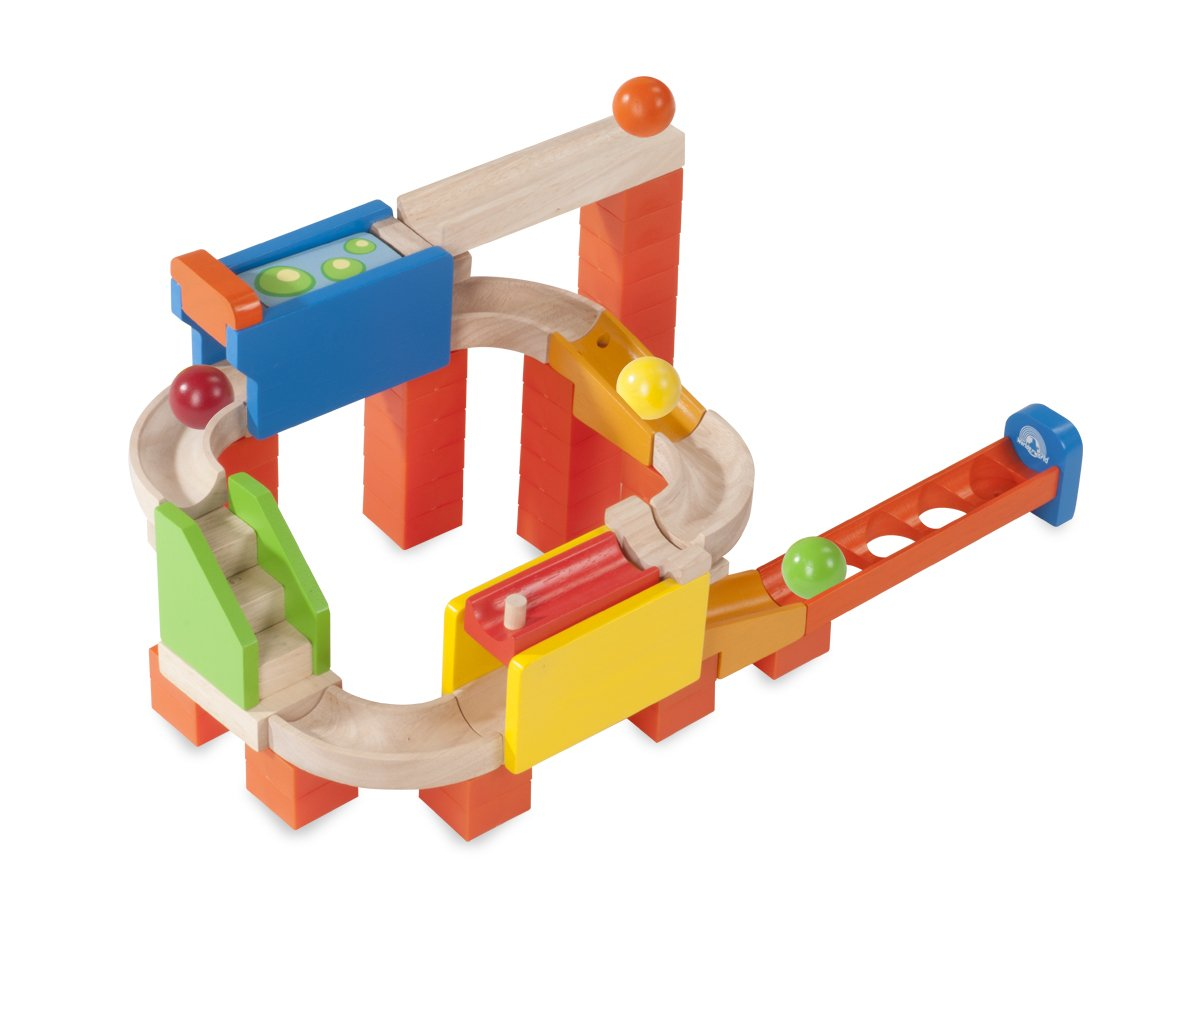 Wonderworld Creative Gravity Play! Trix Tracks 2 Way Flipper - 56 Piece Set Unique Kids Toy with Endless Building Options